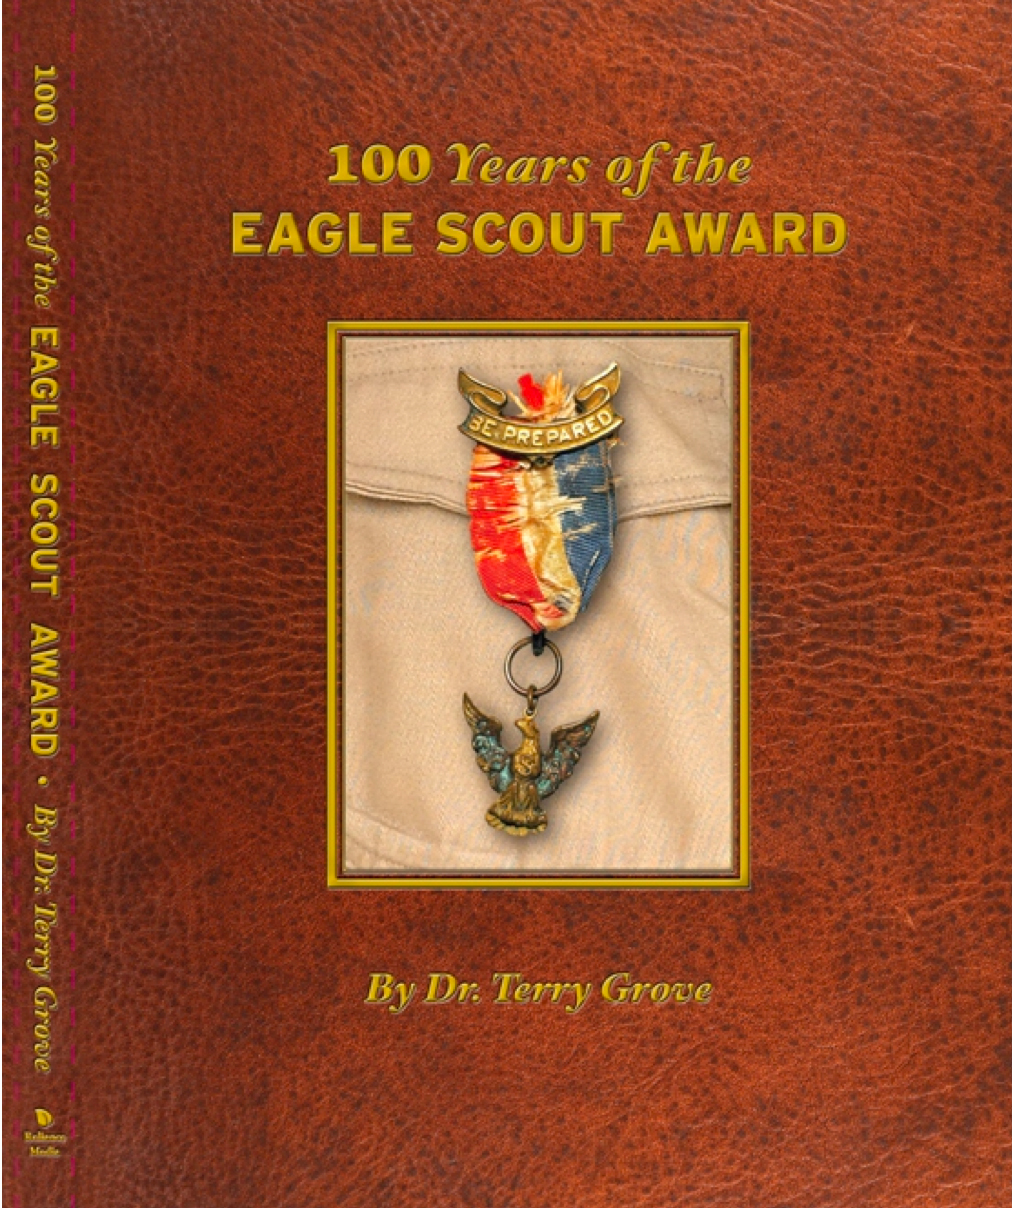 Books > 100 Years of the Eagle Scout Award (Soft Cover). Back to List